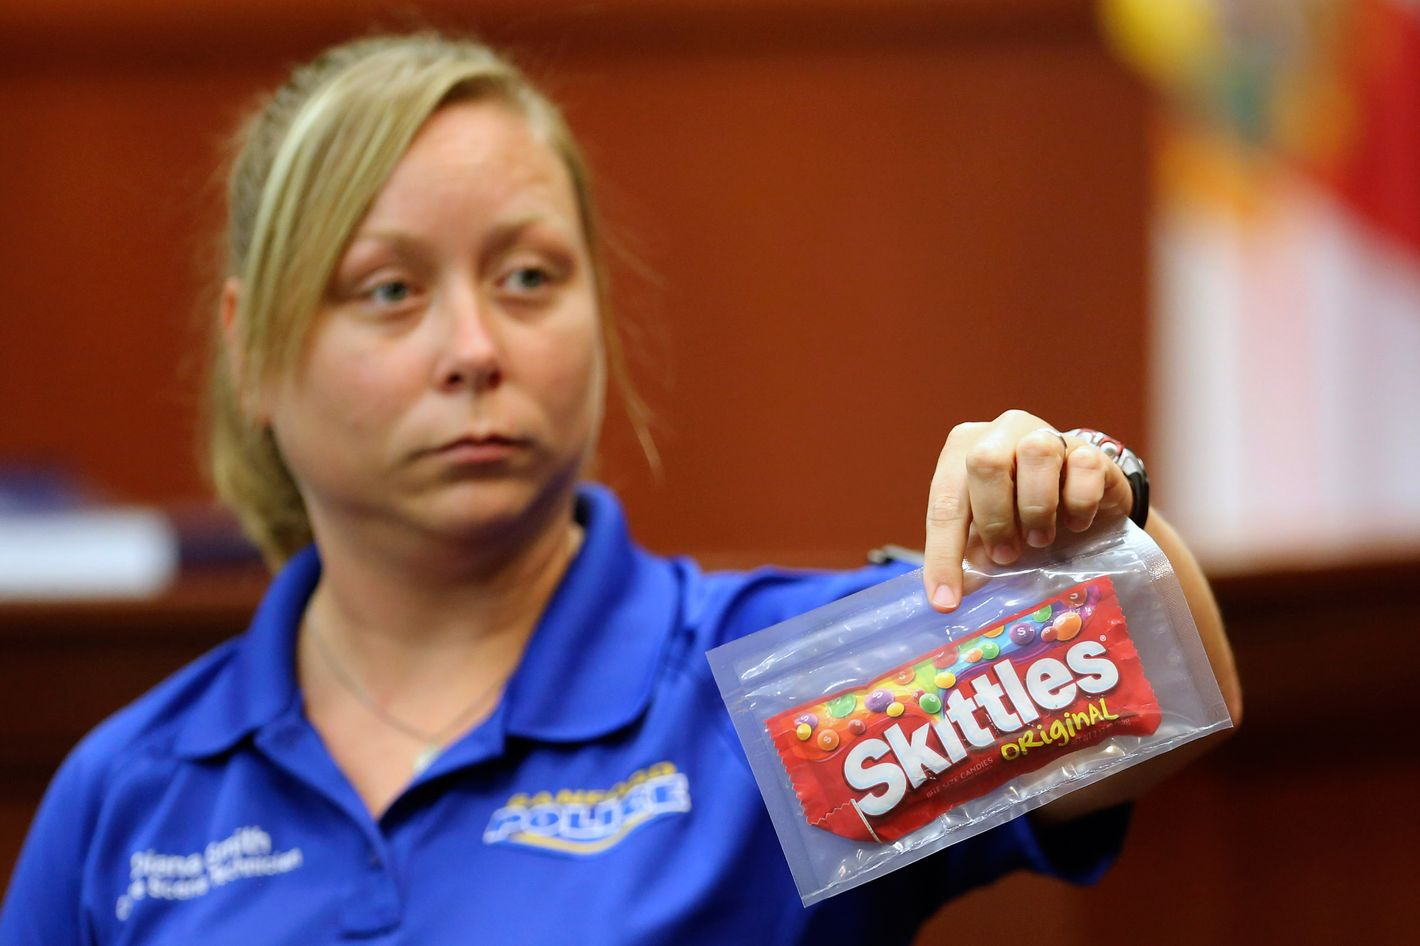 Diana Smith, crime scene technician for the Sanford Police Department, shows the jury a bag of Skittles that was collected as evidence at the crime scene, during George Zimmerman's trial in Seminole circuit court June 25, 2013 in Sanford, Florida. Zimmerman is charged with second-degree murder for the February 2012 shooting death of 17-year-old Trayvon Martin.